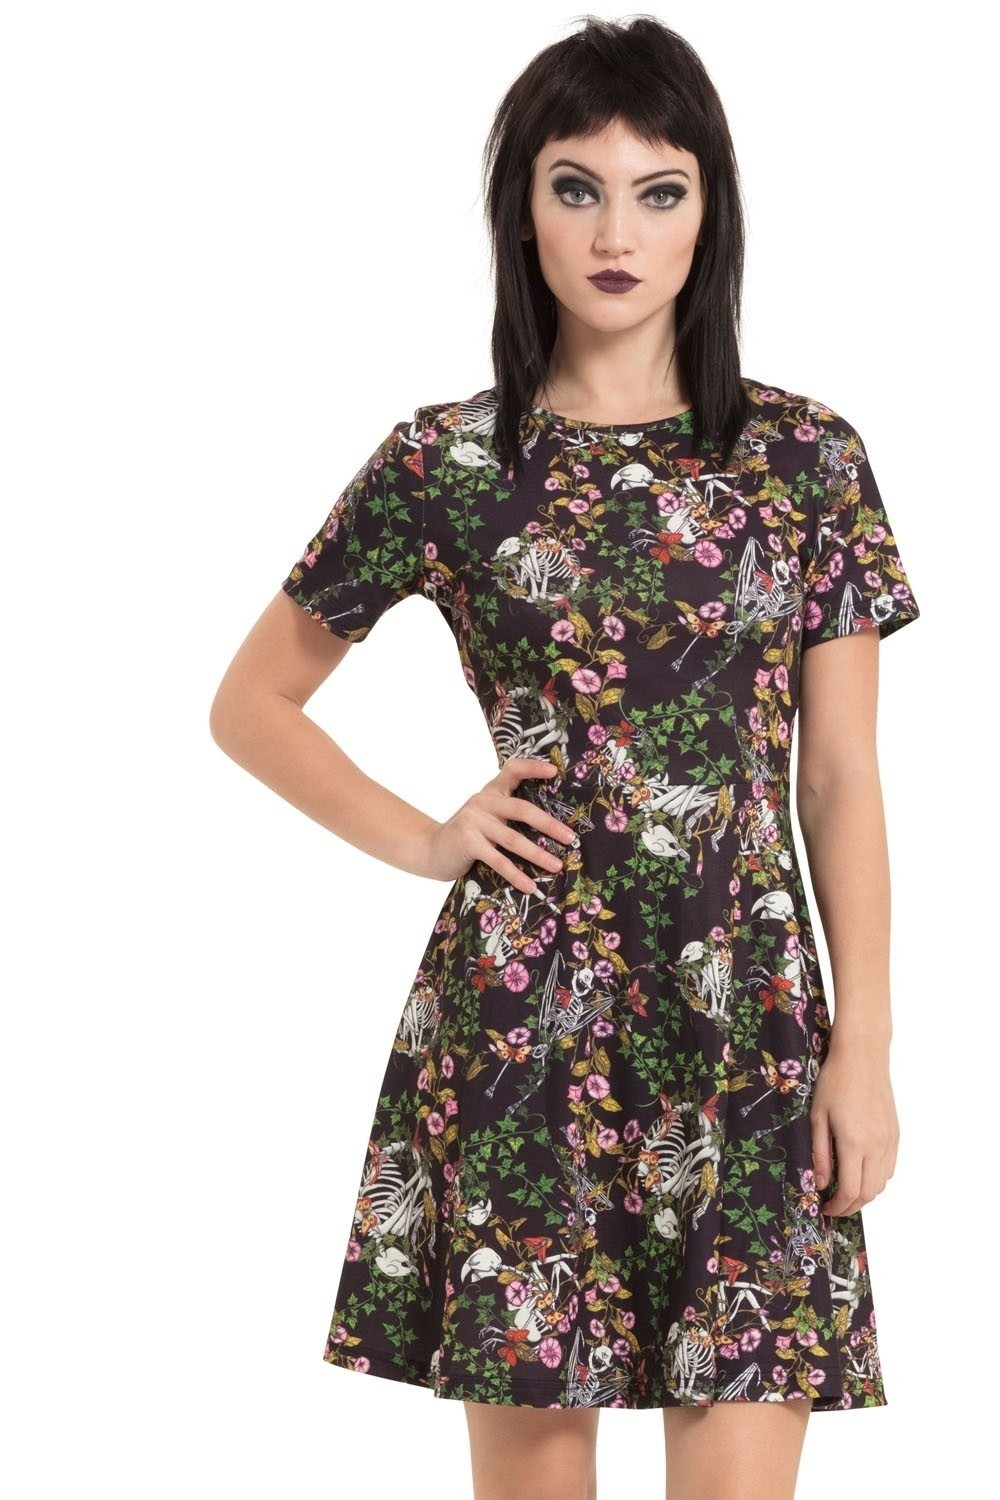 Jurk I don't want no shrub, bloemen en skeletten print